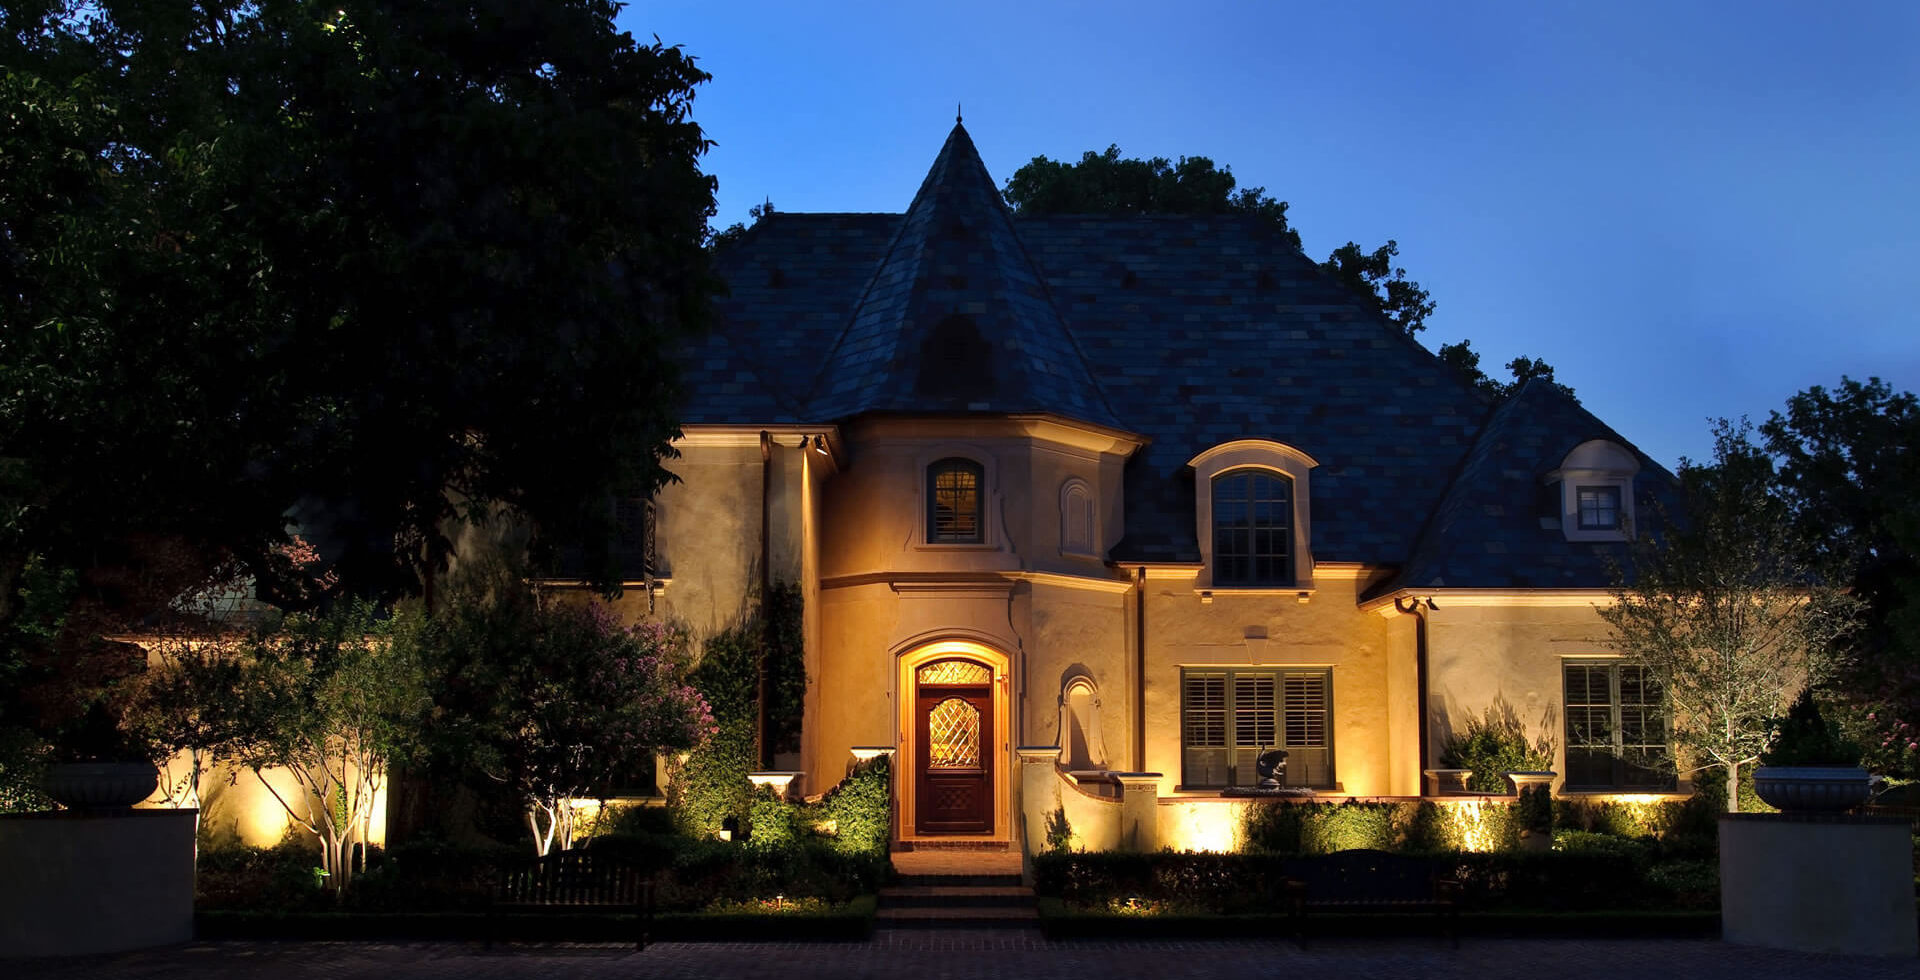 Landscape Lighting Supply Company Your One Stop Shop For All